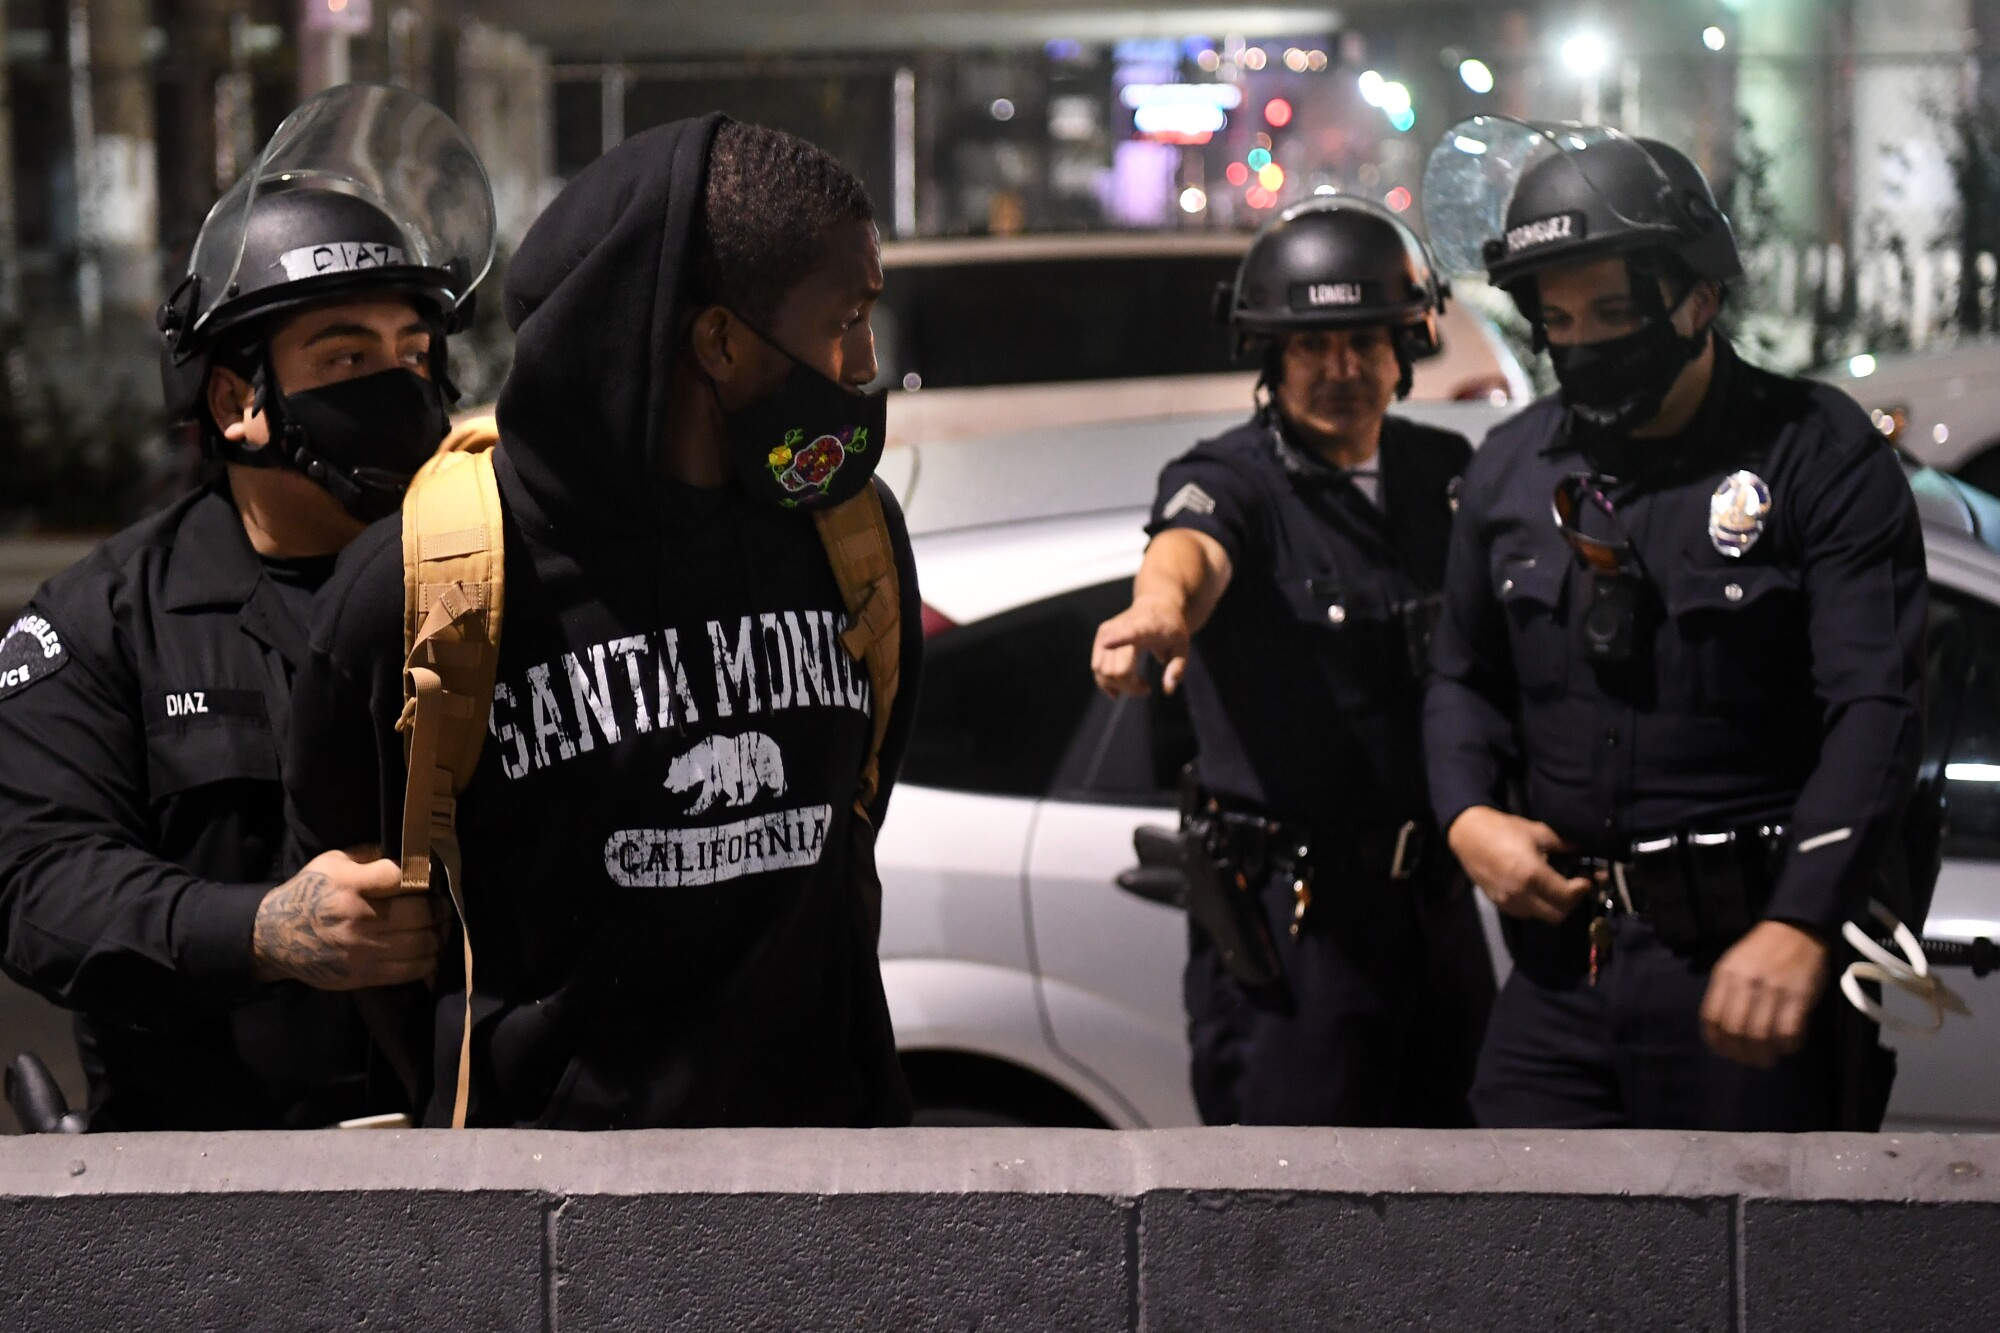 LAPD officers arrest a protester on Figueroa Street in downtown Los Angeles on election night.